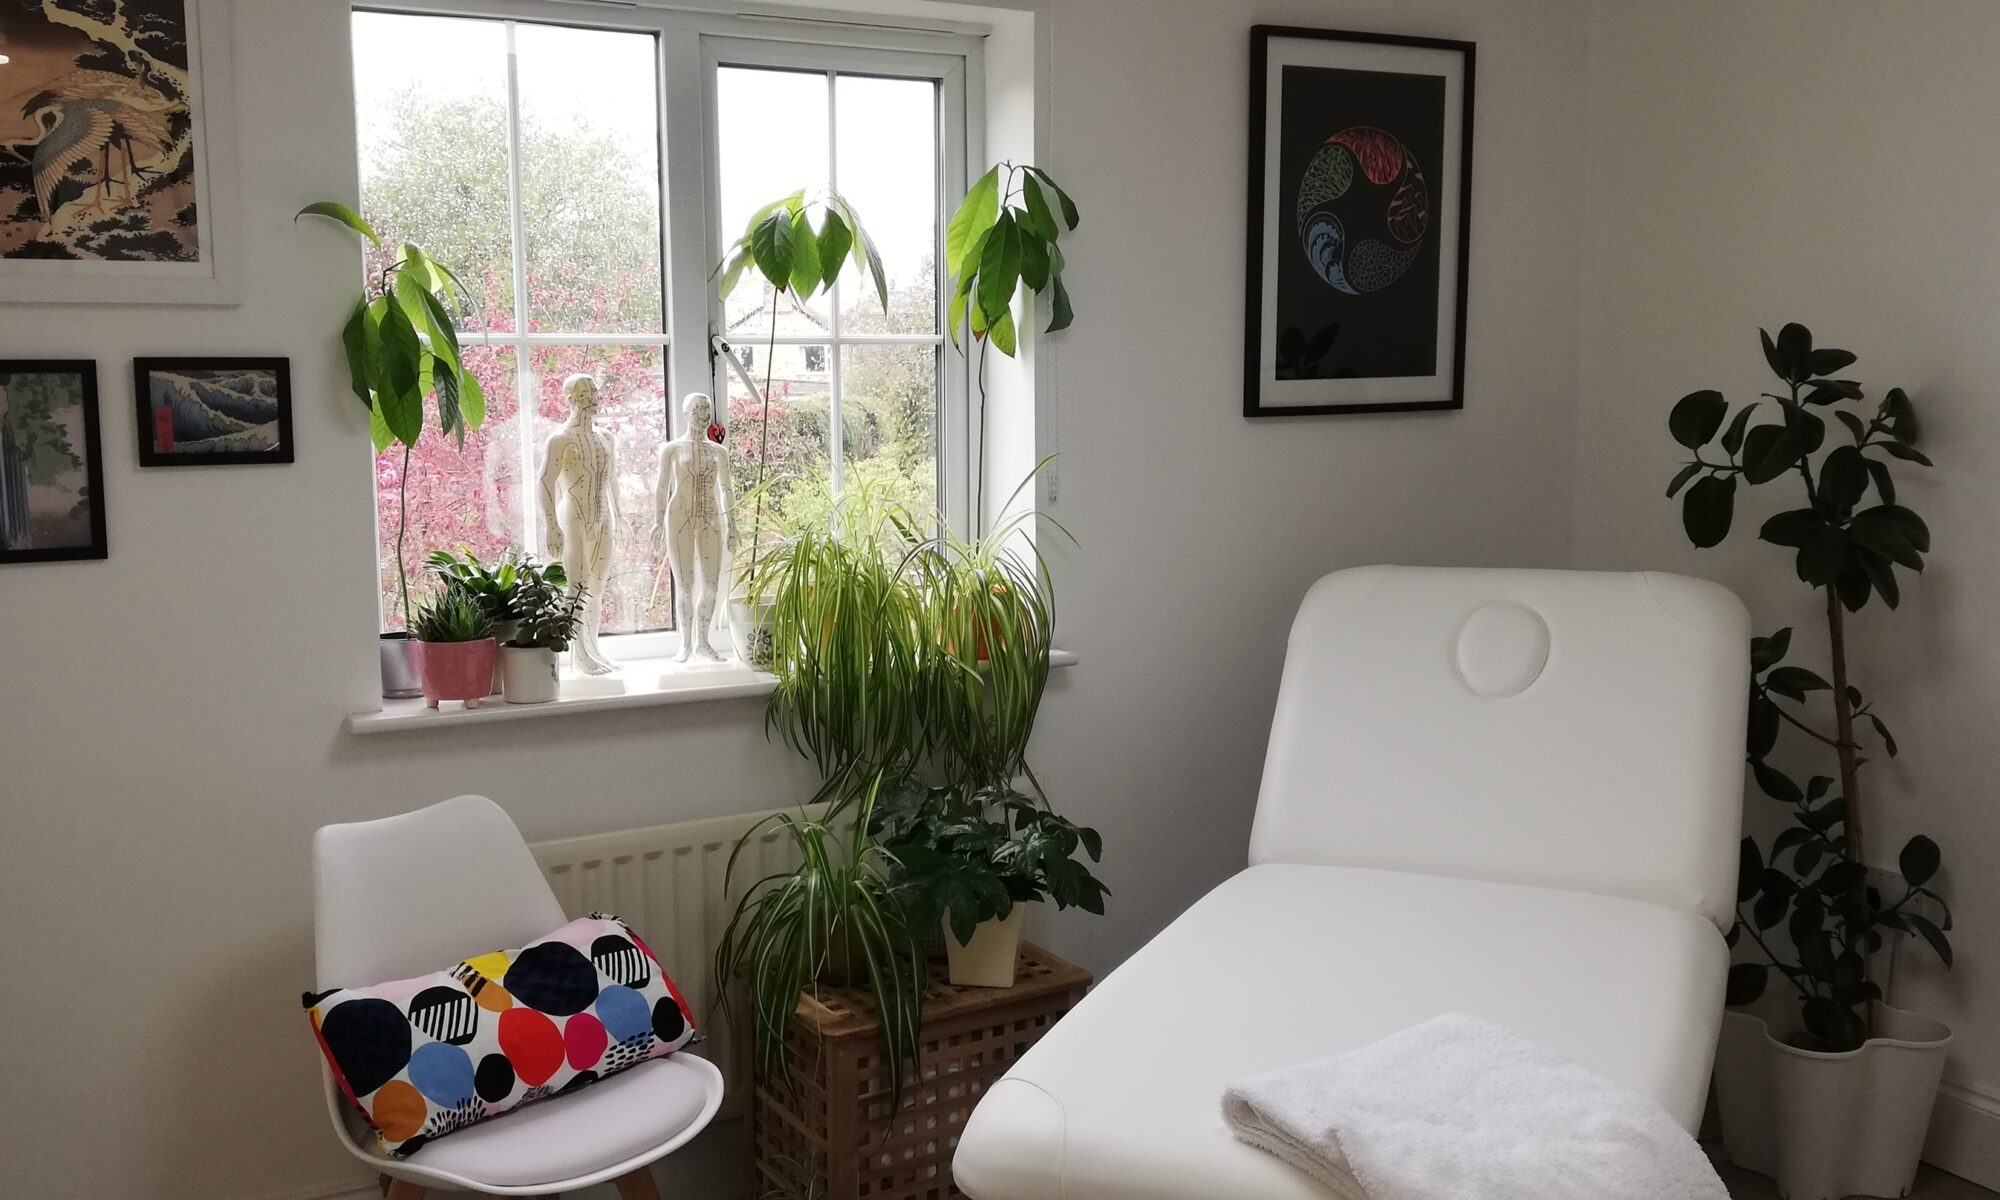 Showing new five element acupuncture treatment room in Willingham, Cambridgeshire